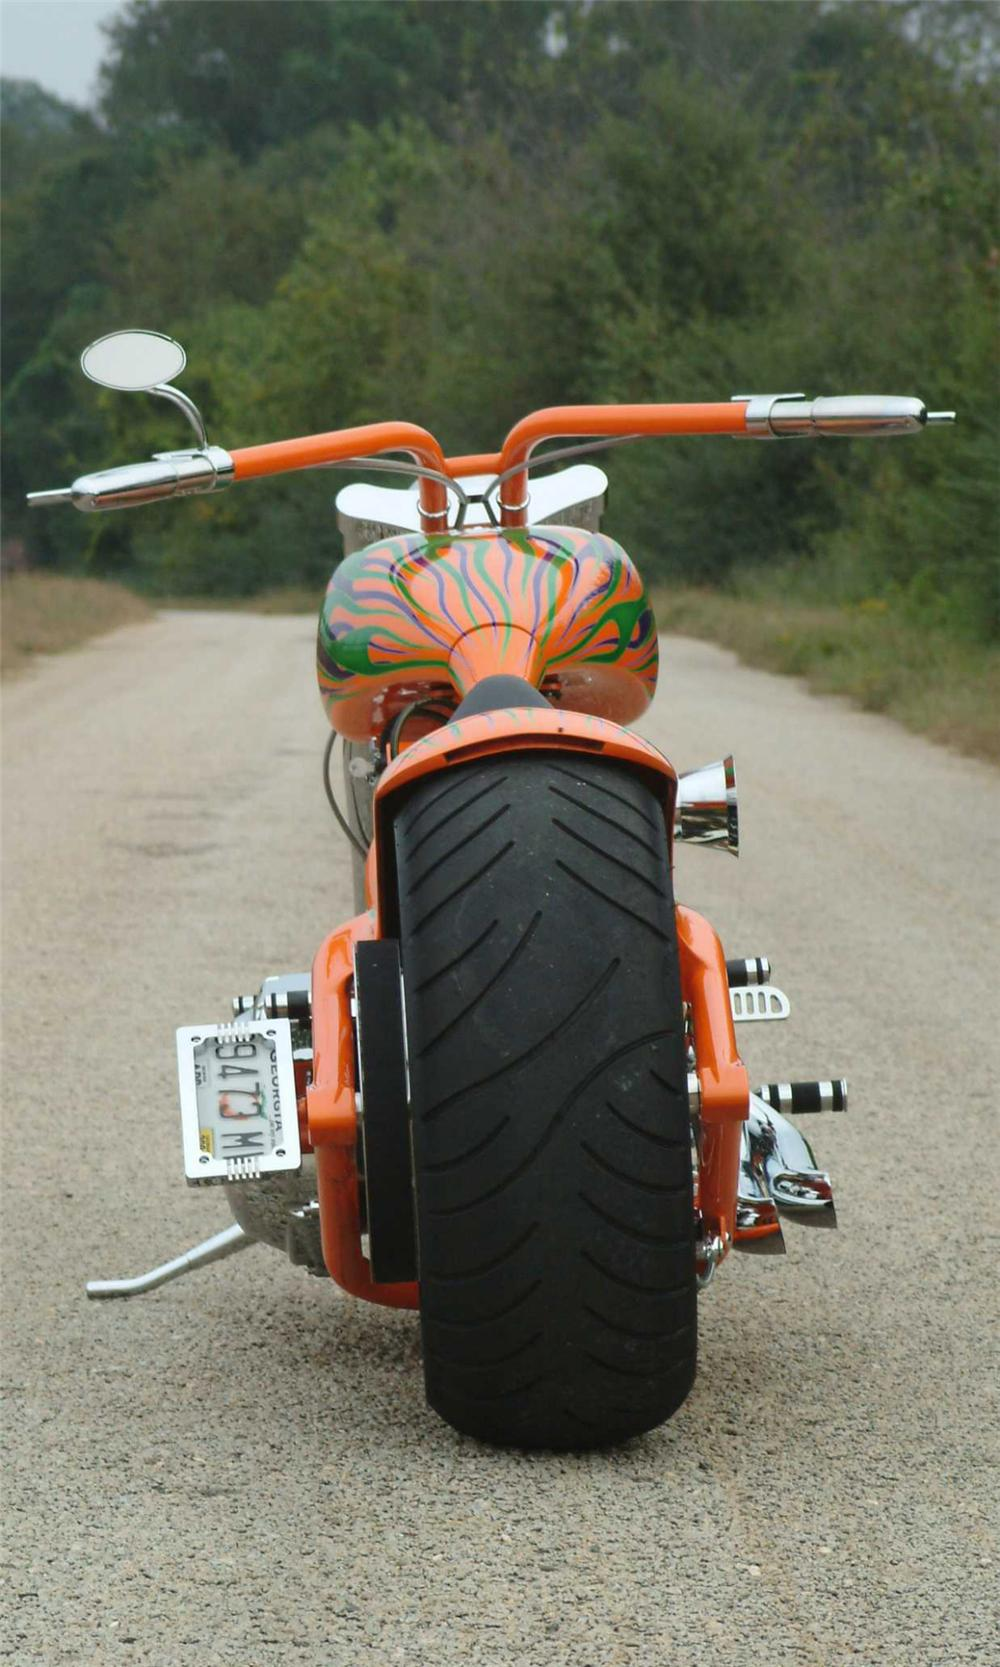 2003 REDNECK ROCKET LOWLIFE CUSTOM MOTORCYCLE - Rear 3/4 - 39913